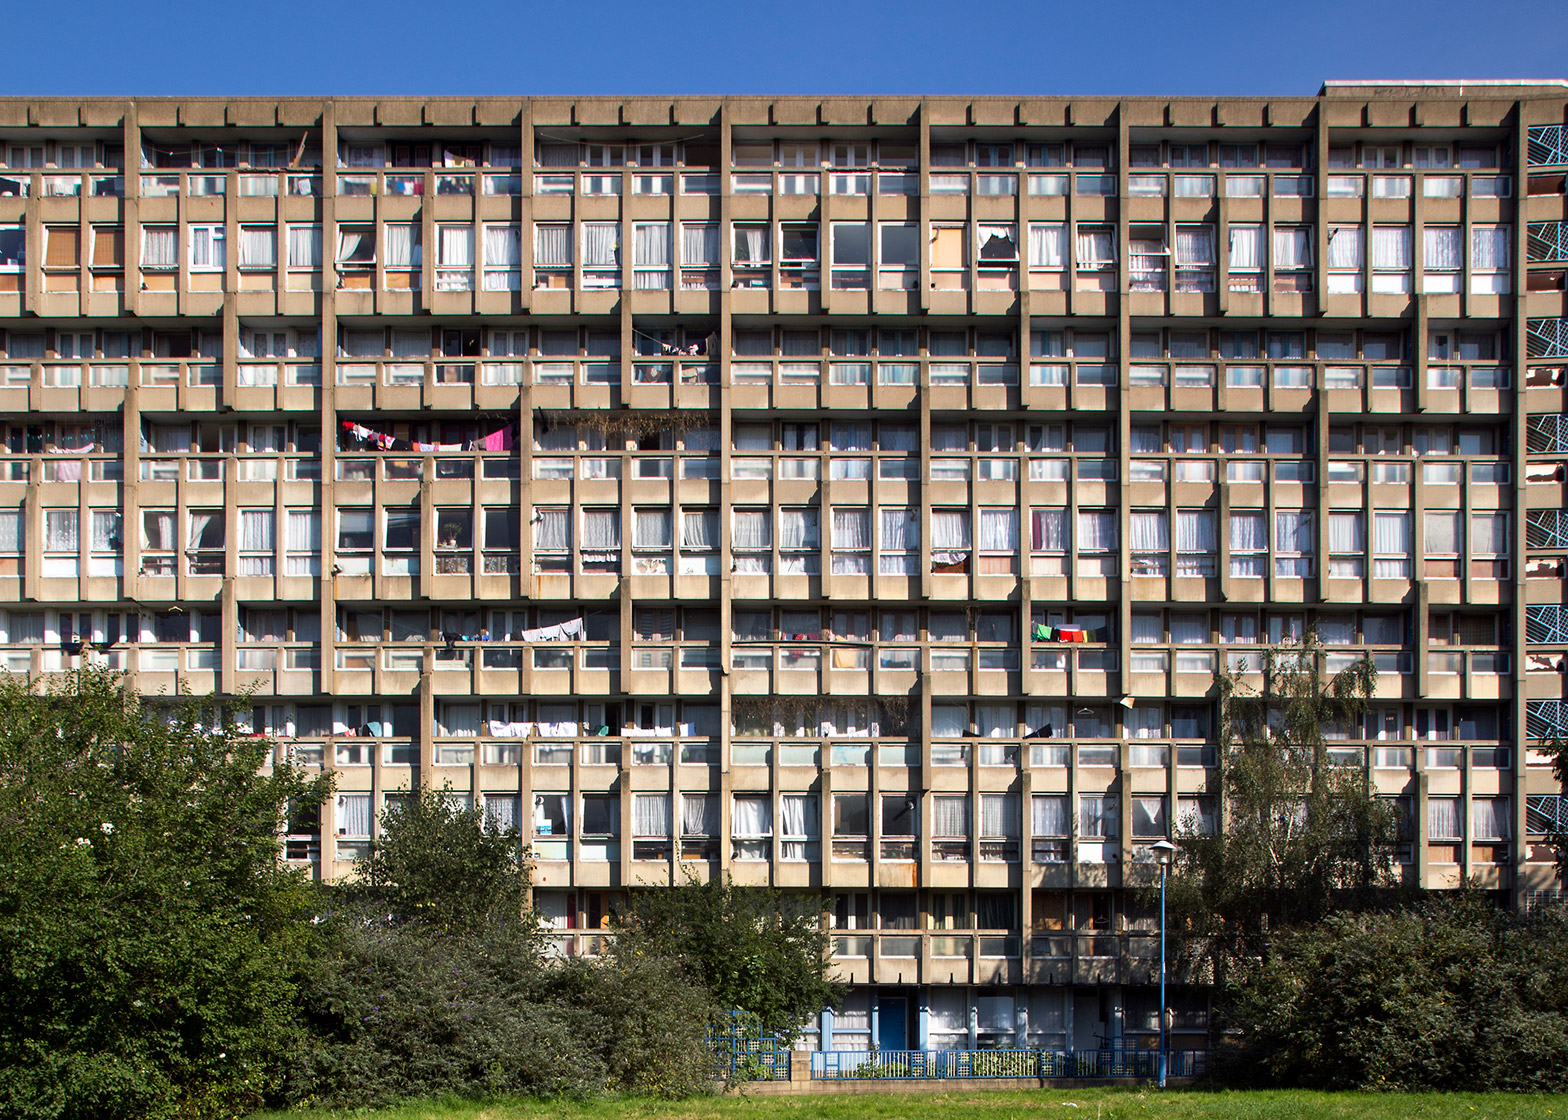 Haworth Tompkins Appointed To Work On Robin Hood Gardens Redevelopment